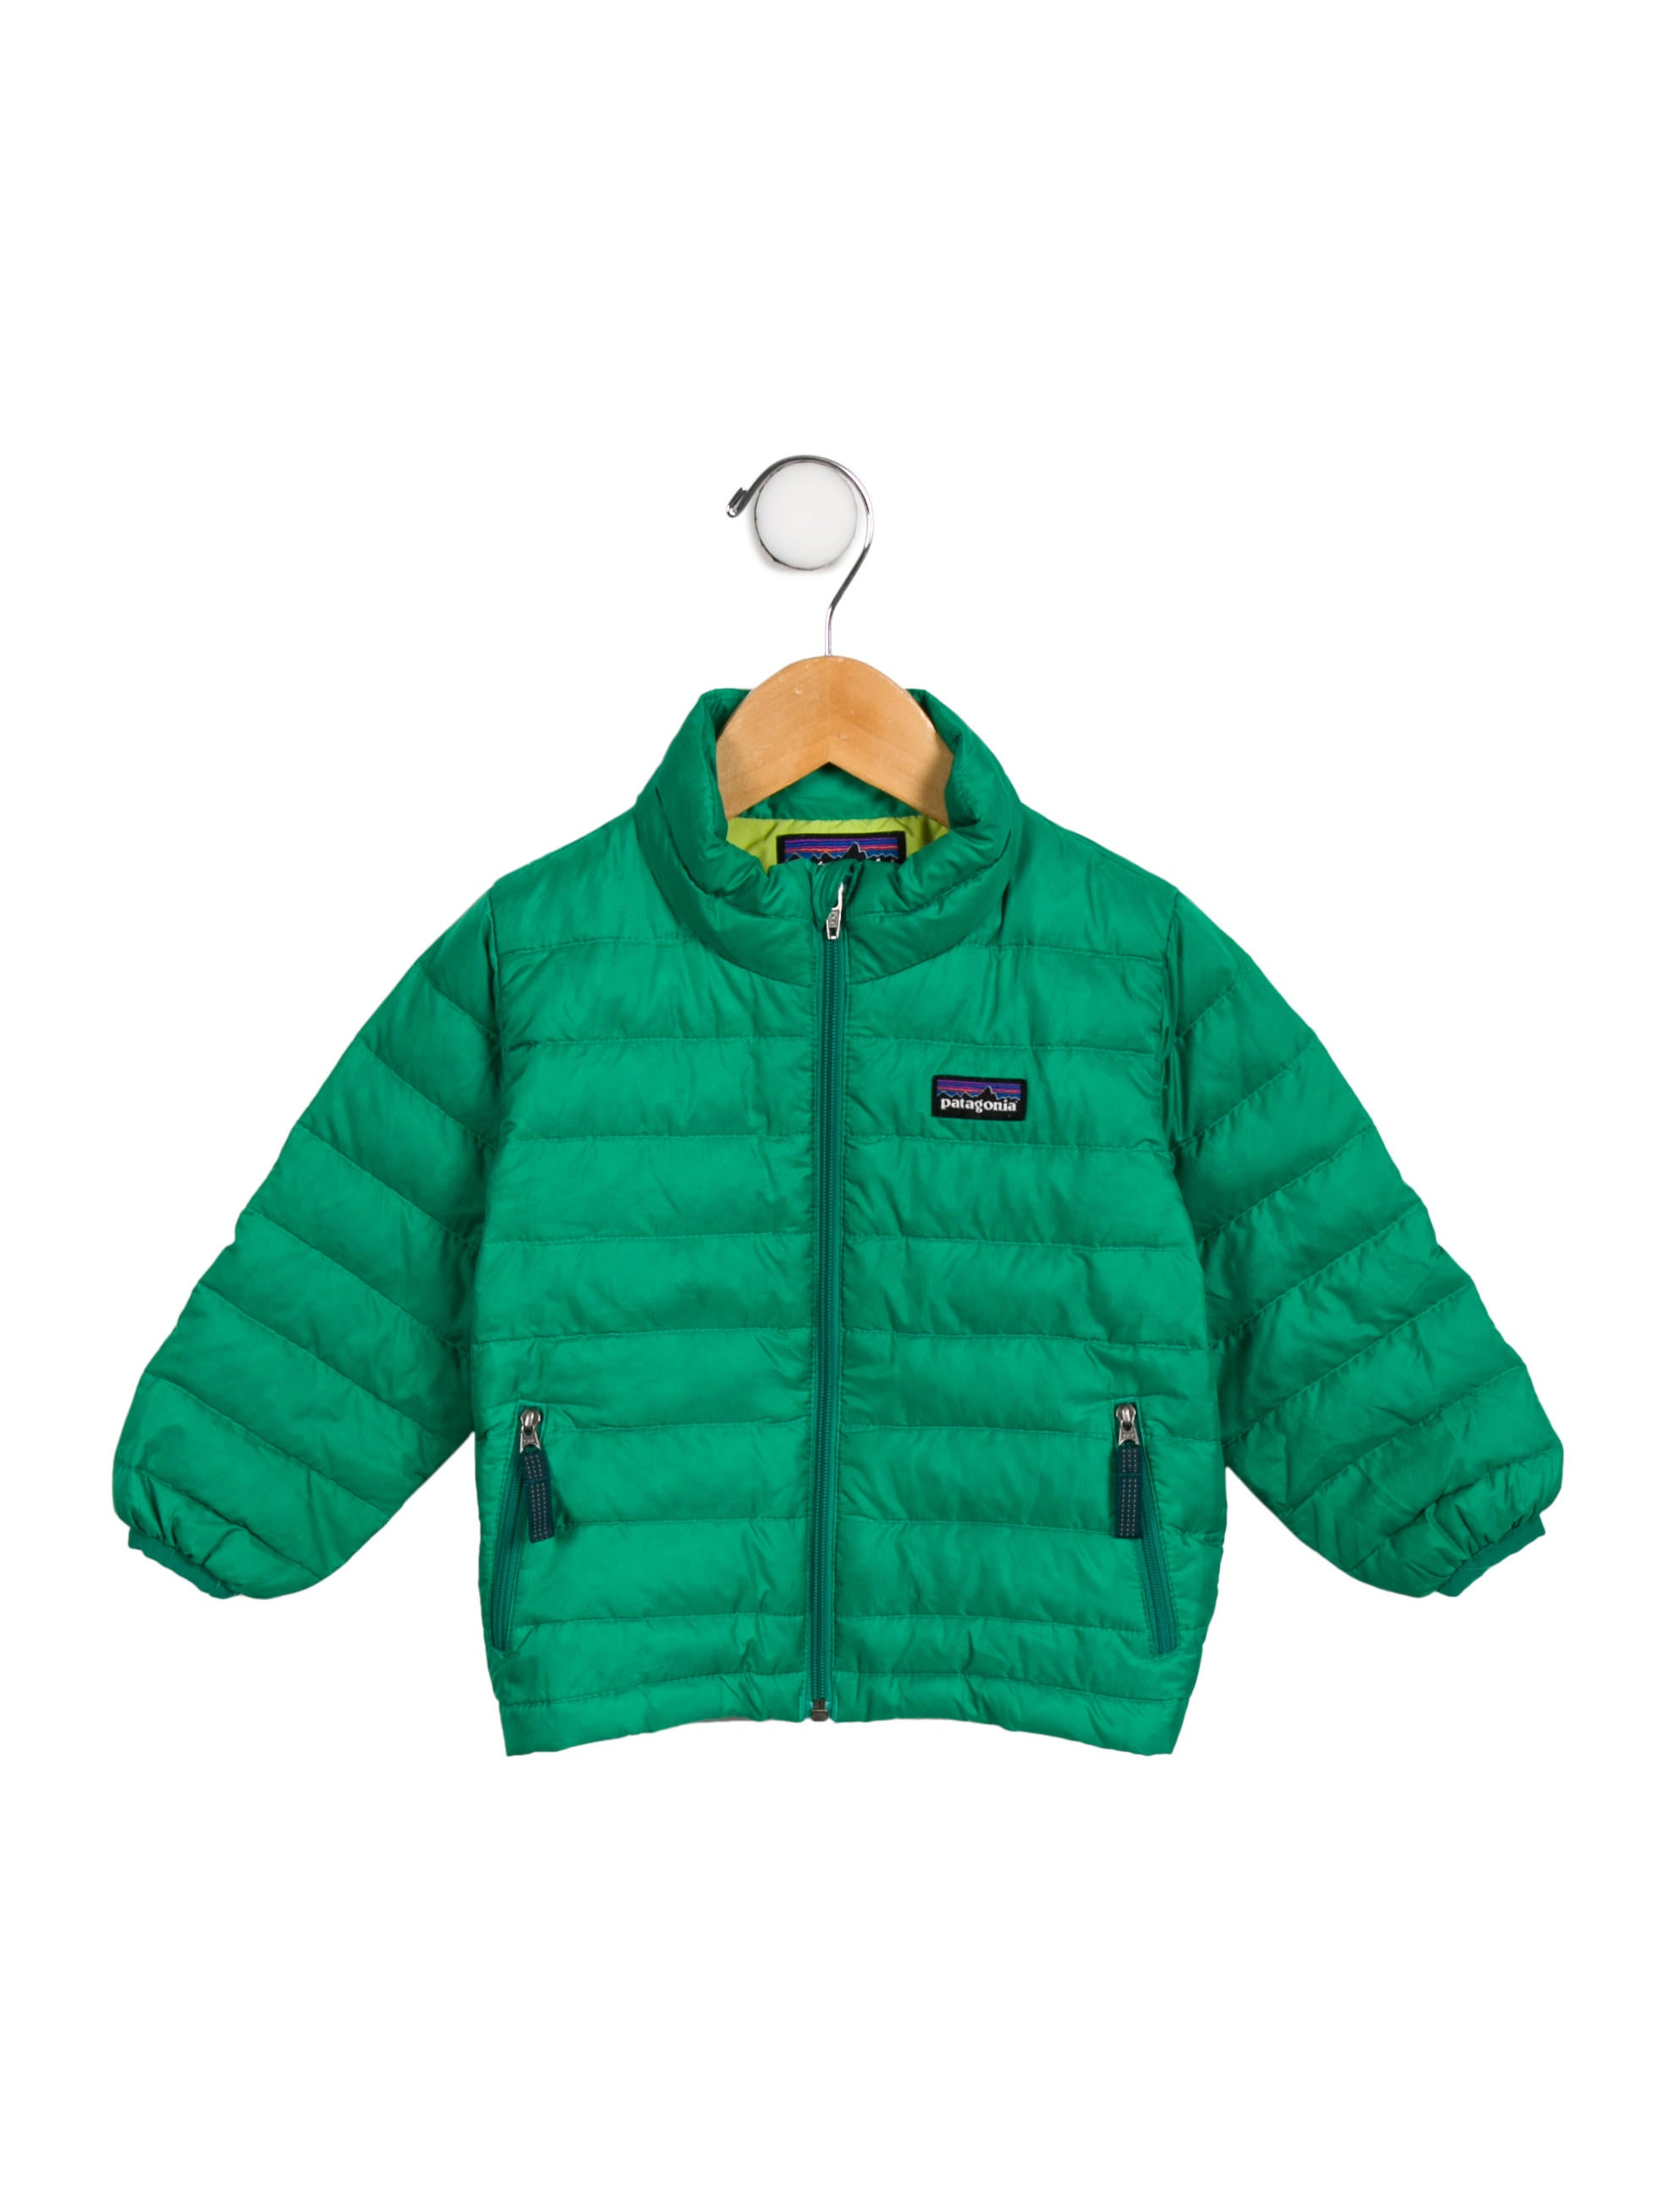 270feac3d Patagonia Boys' Down Puffer Coat - Boys - WPATG22052 | The RealReal